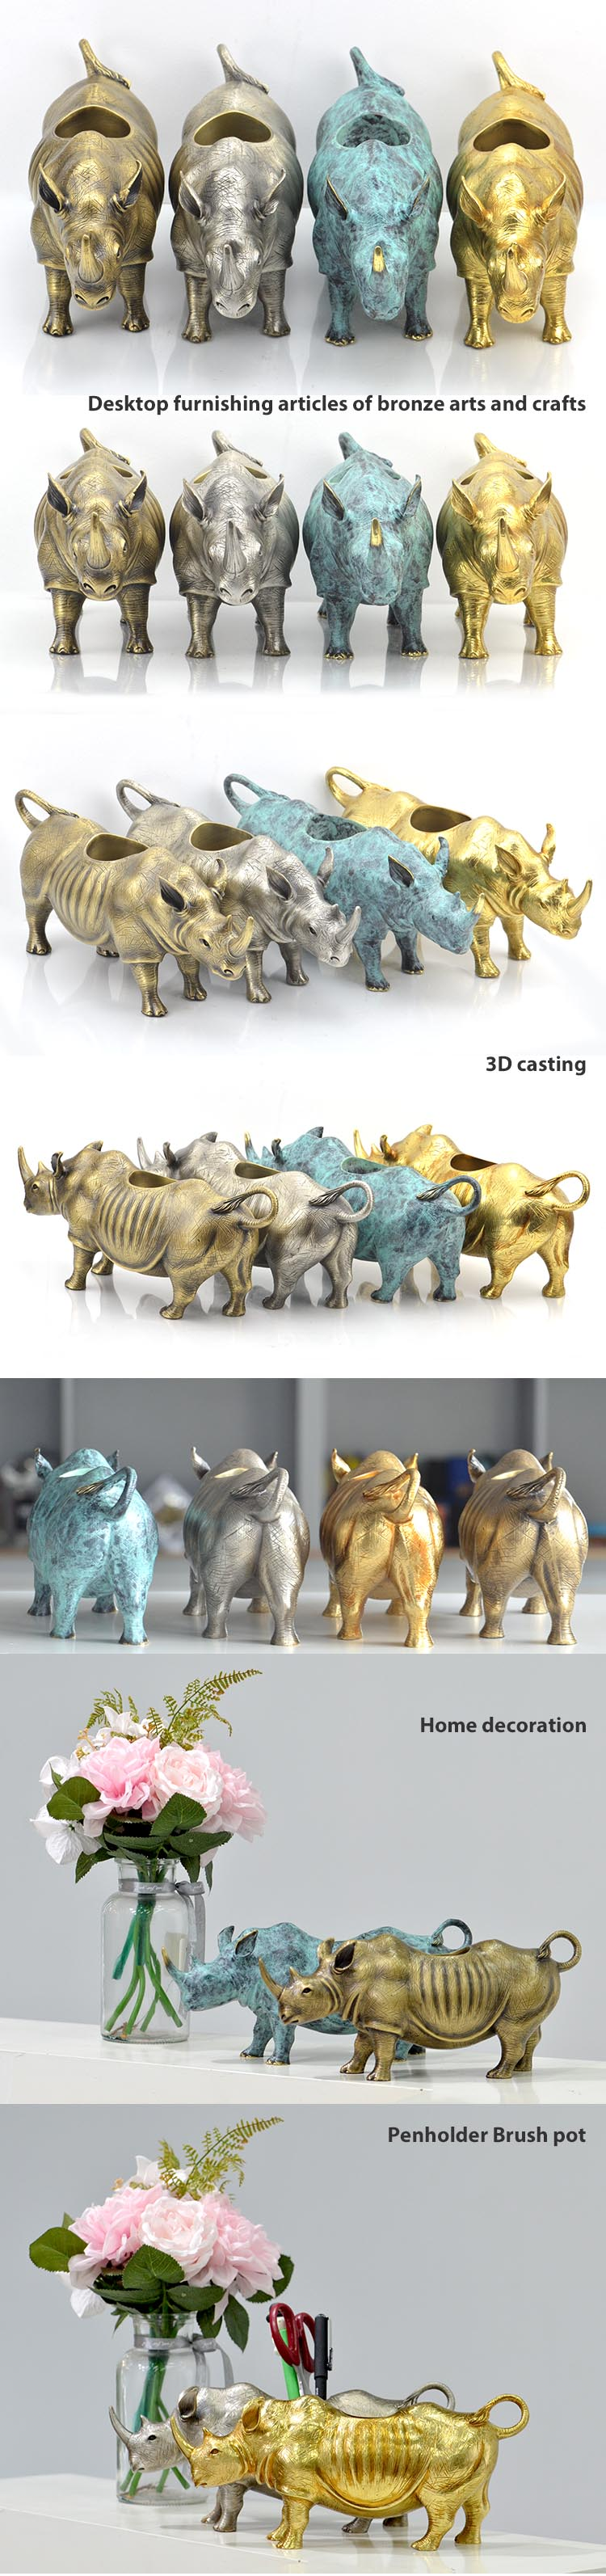 Wholesale Arts And Crafts Gift Decorative Item Supplies Custom Carving Home Decoration Metal Animal Arts Craft